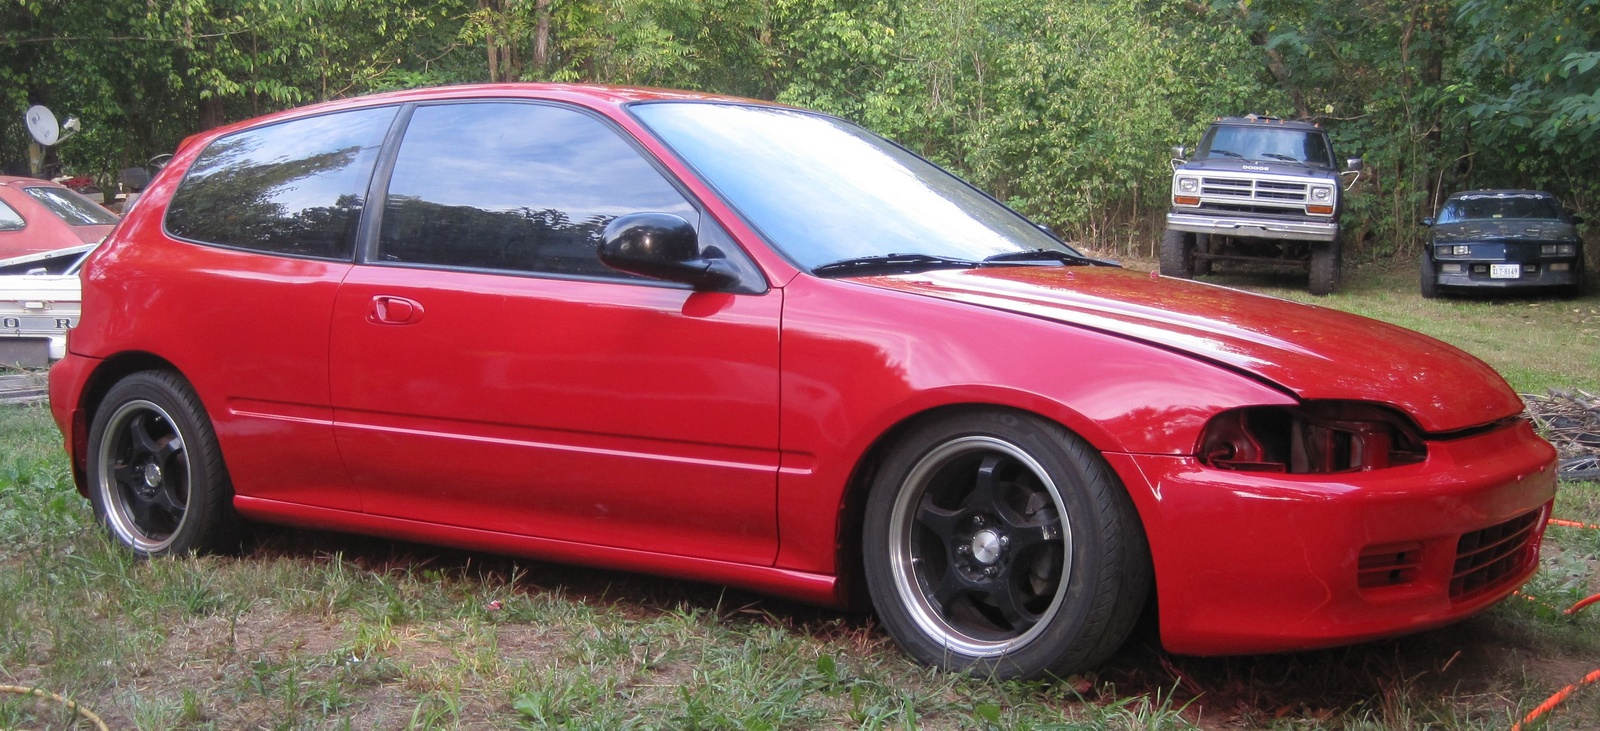 1993 honda civic hatchback - photo #18